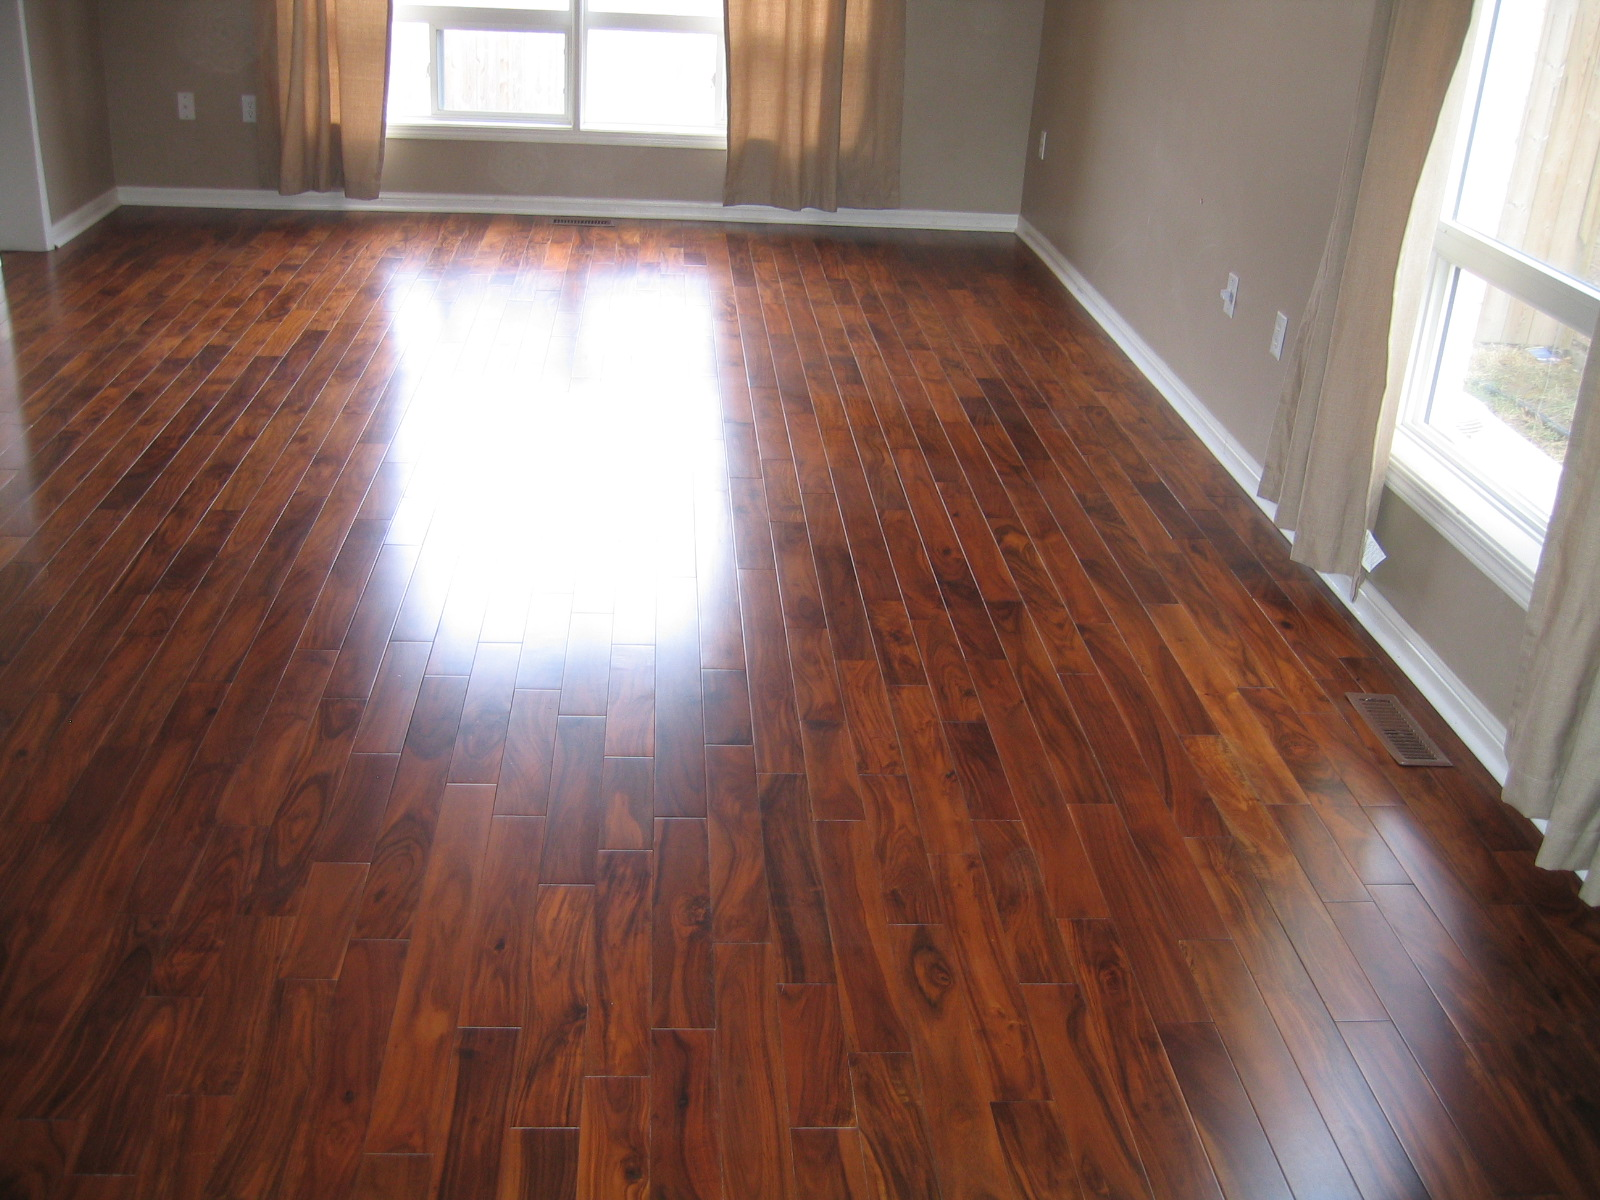 attached pad rocksolid floors vinyl pine with engineered file plank more core products rock pinion views solid